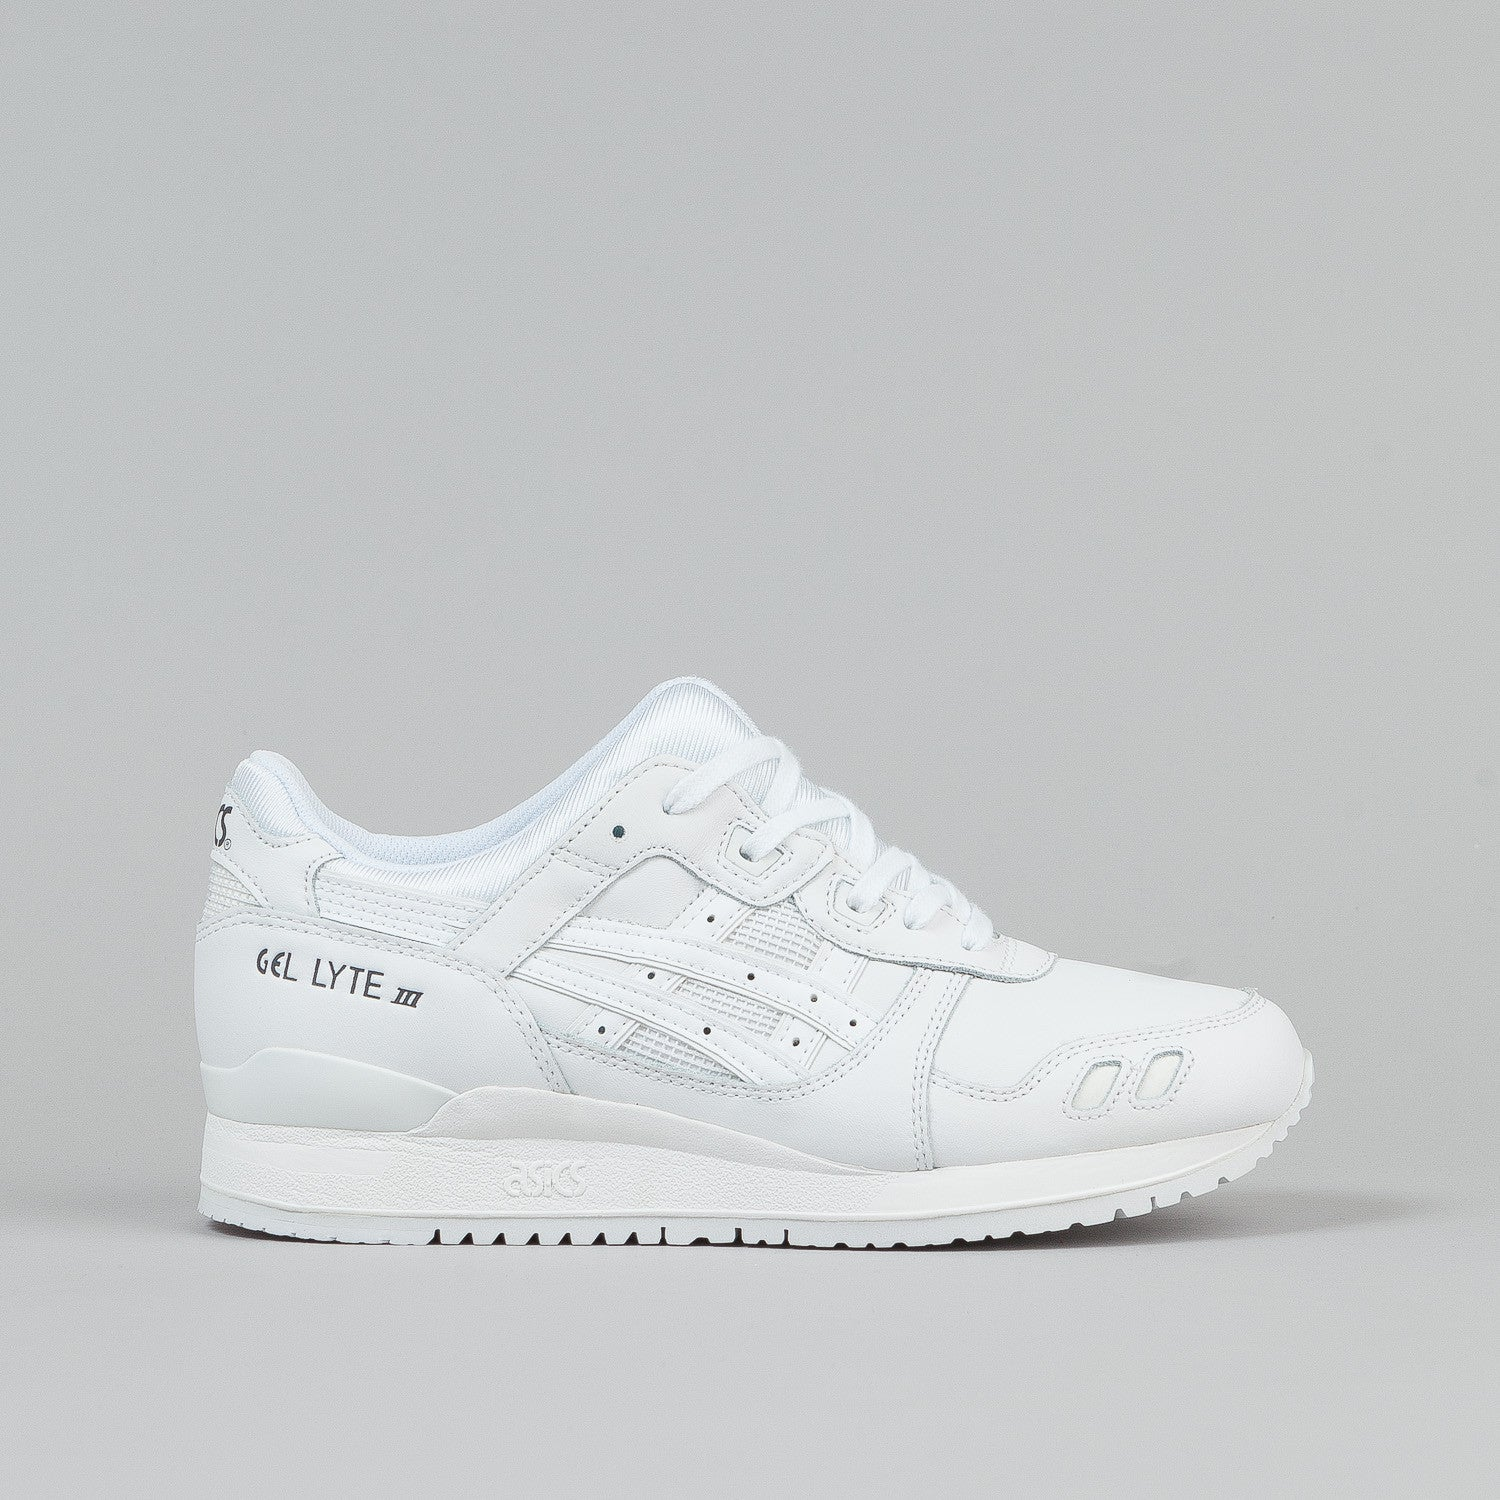 Asics Gel Lyte III Shoes 'Triple White'